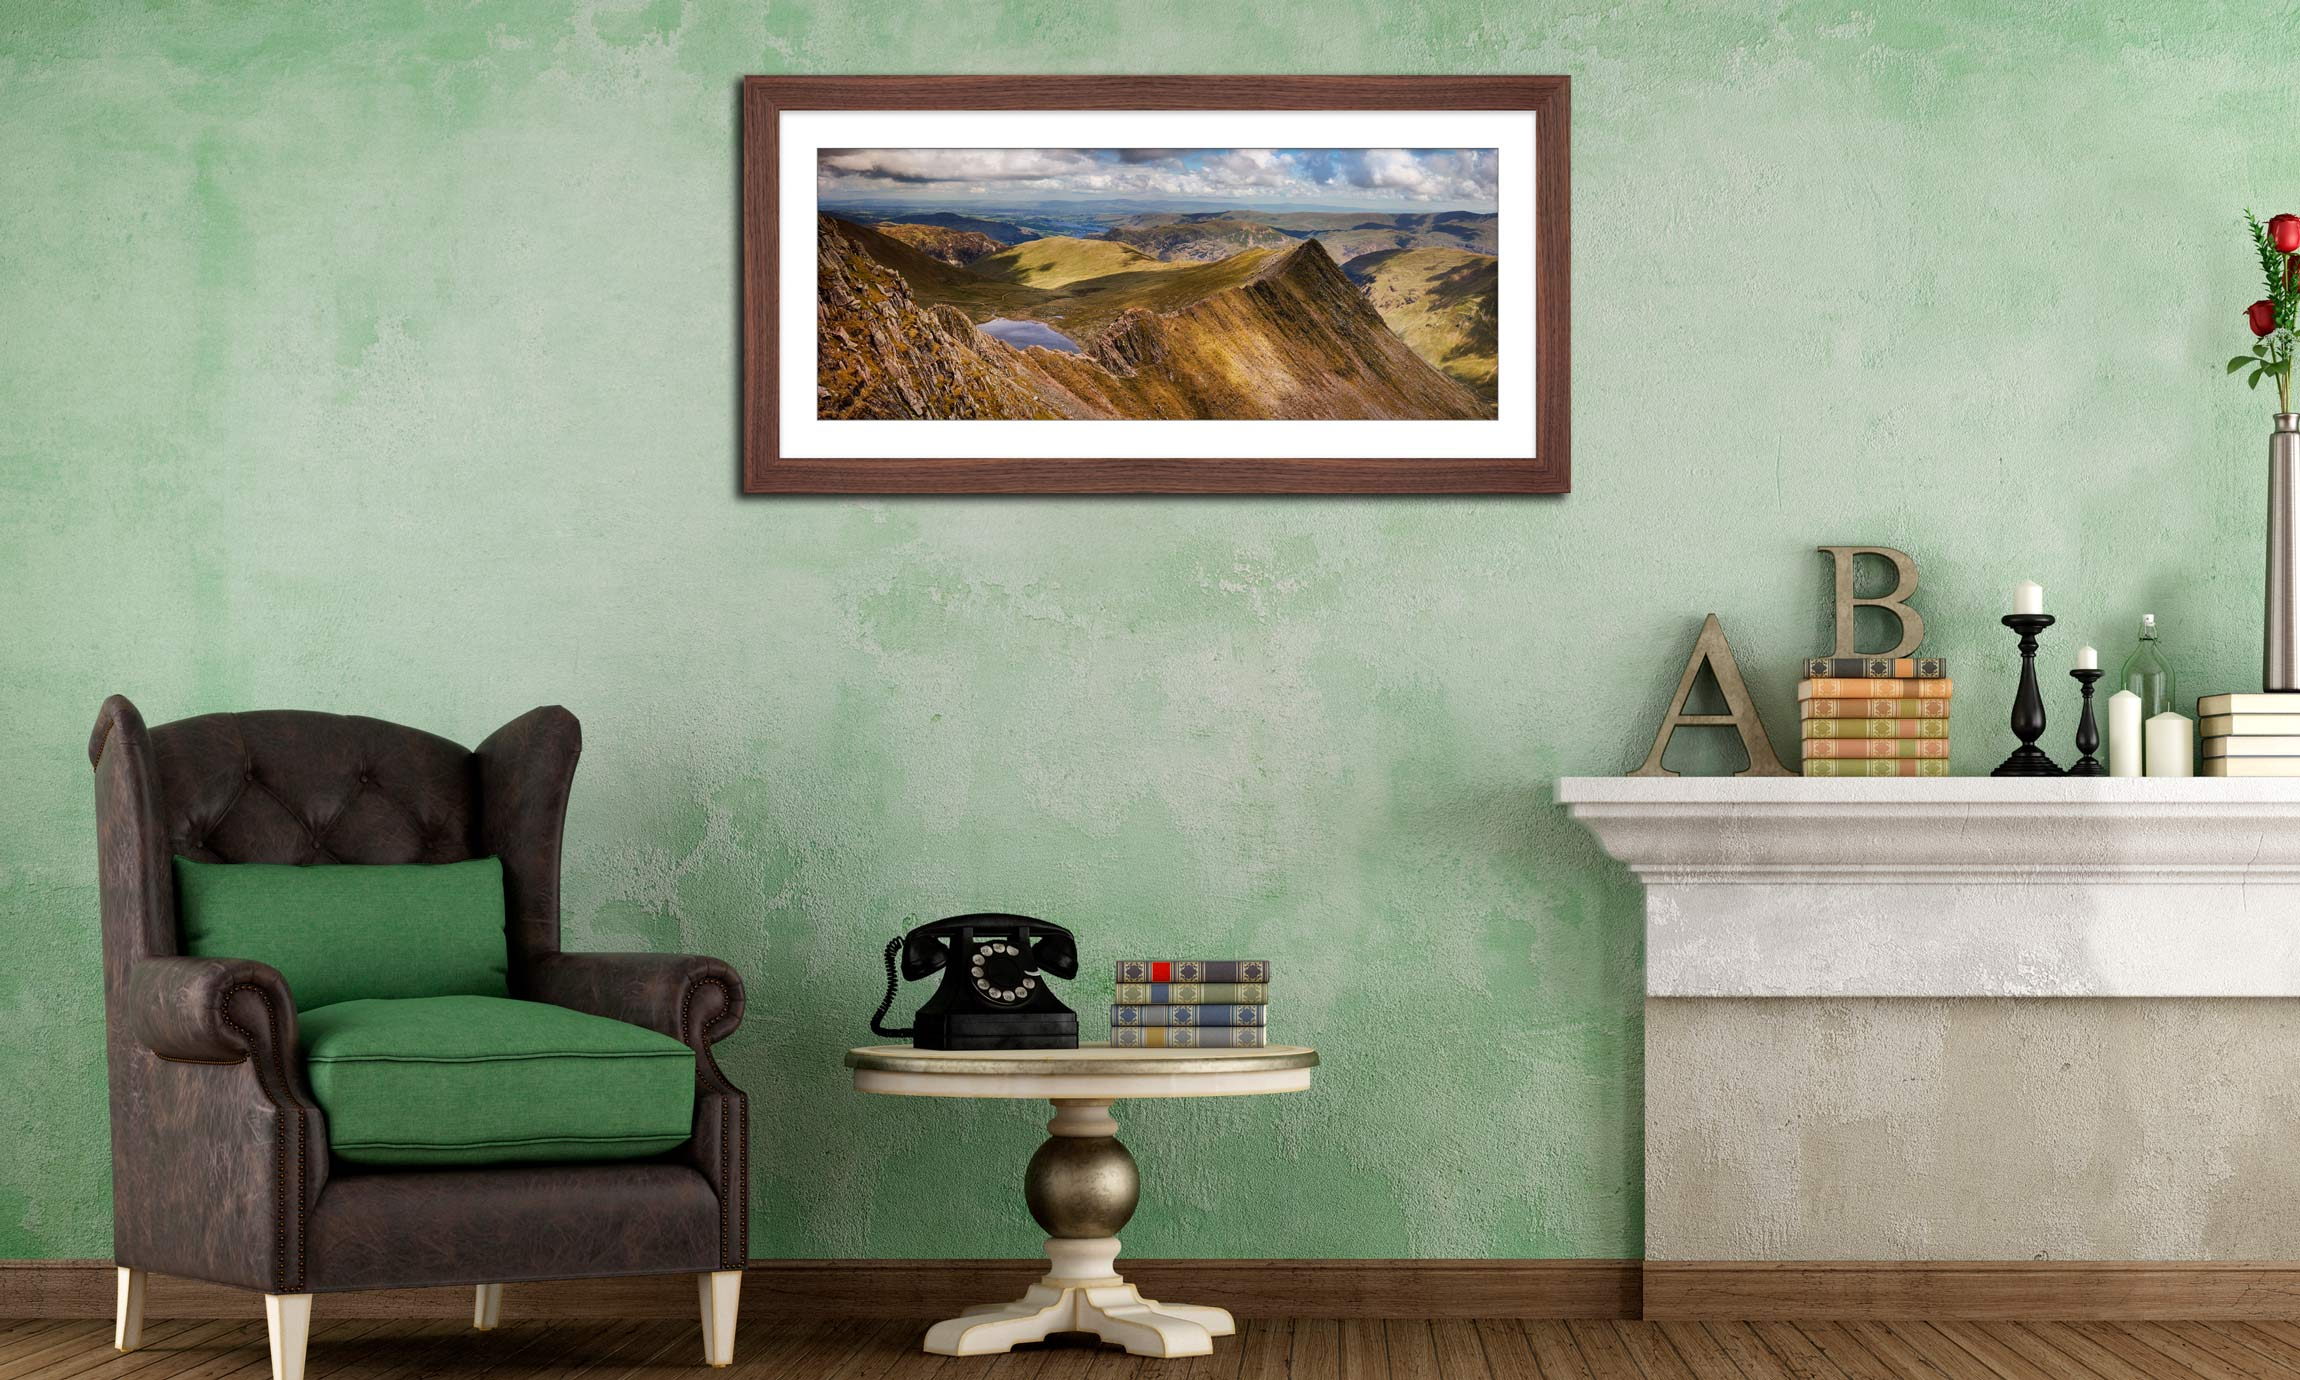 Striding Edge Panorama - Framed Print with Mount on Wall